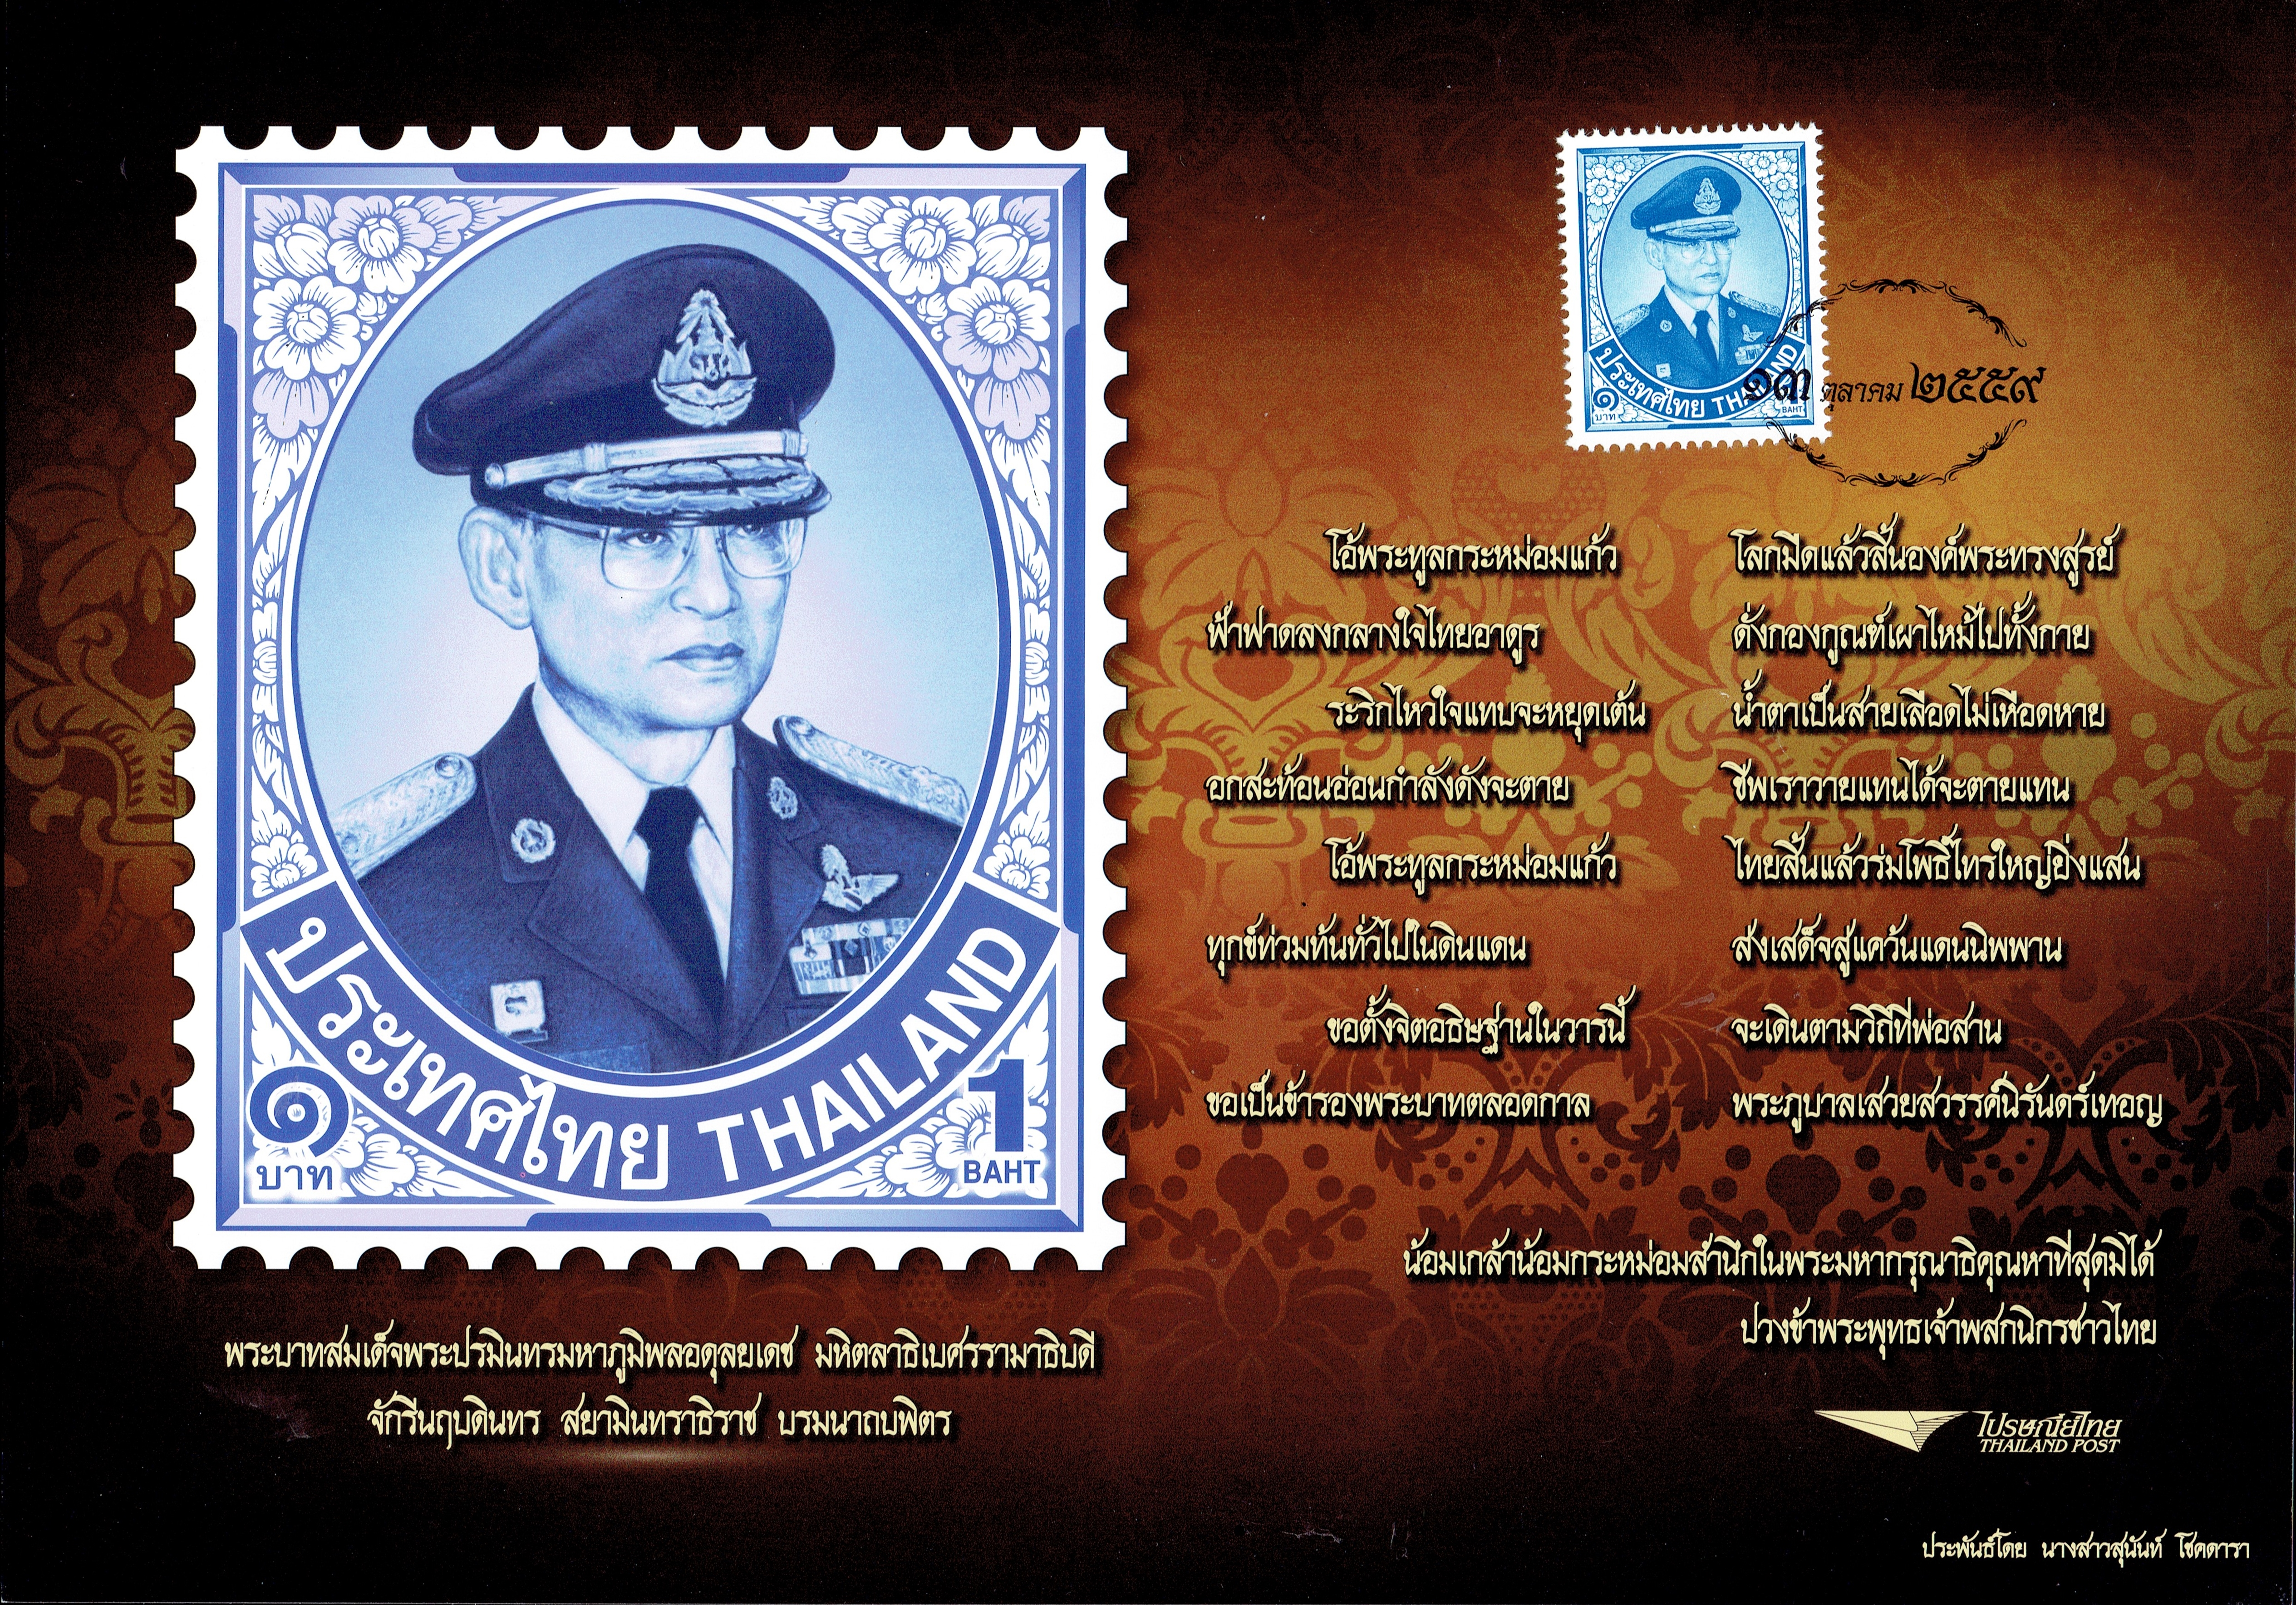 Thailand Post Special Sheet (2016)